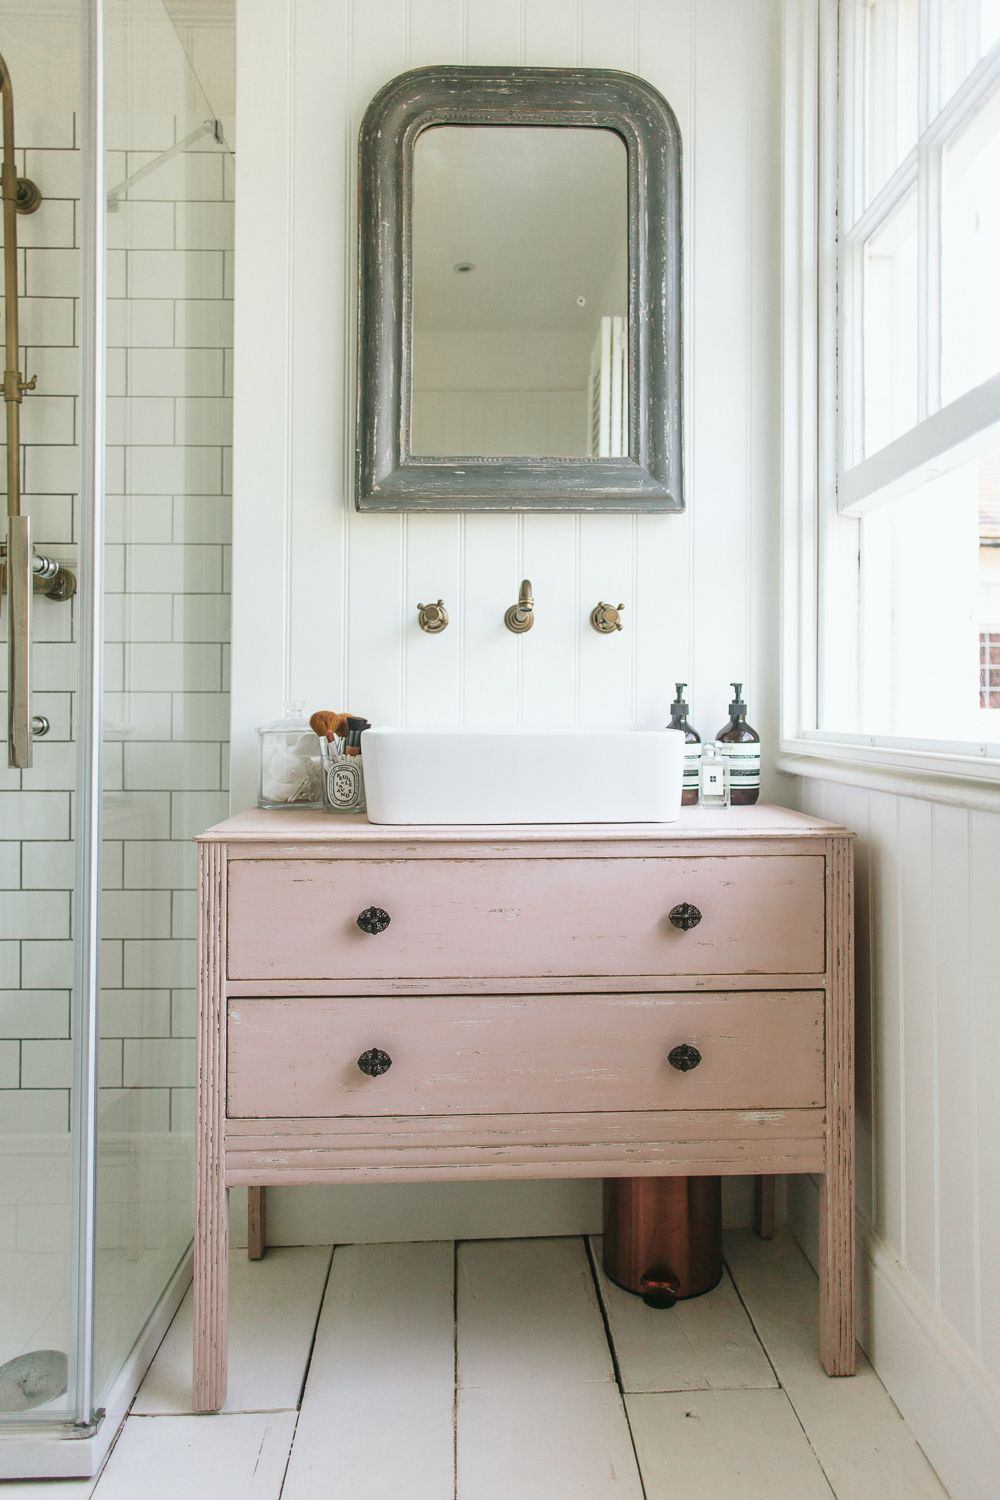 34 Chic Bathroom Vanity Decorating Ideas You Can Try At Home   Trend Magz